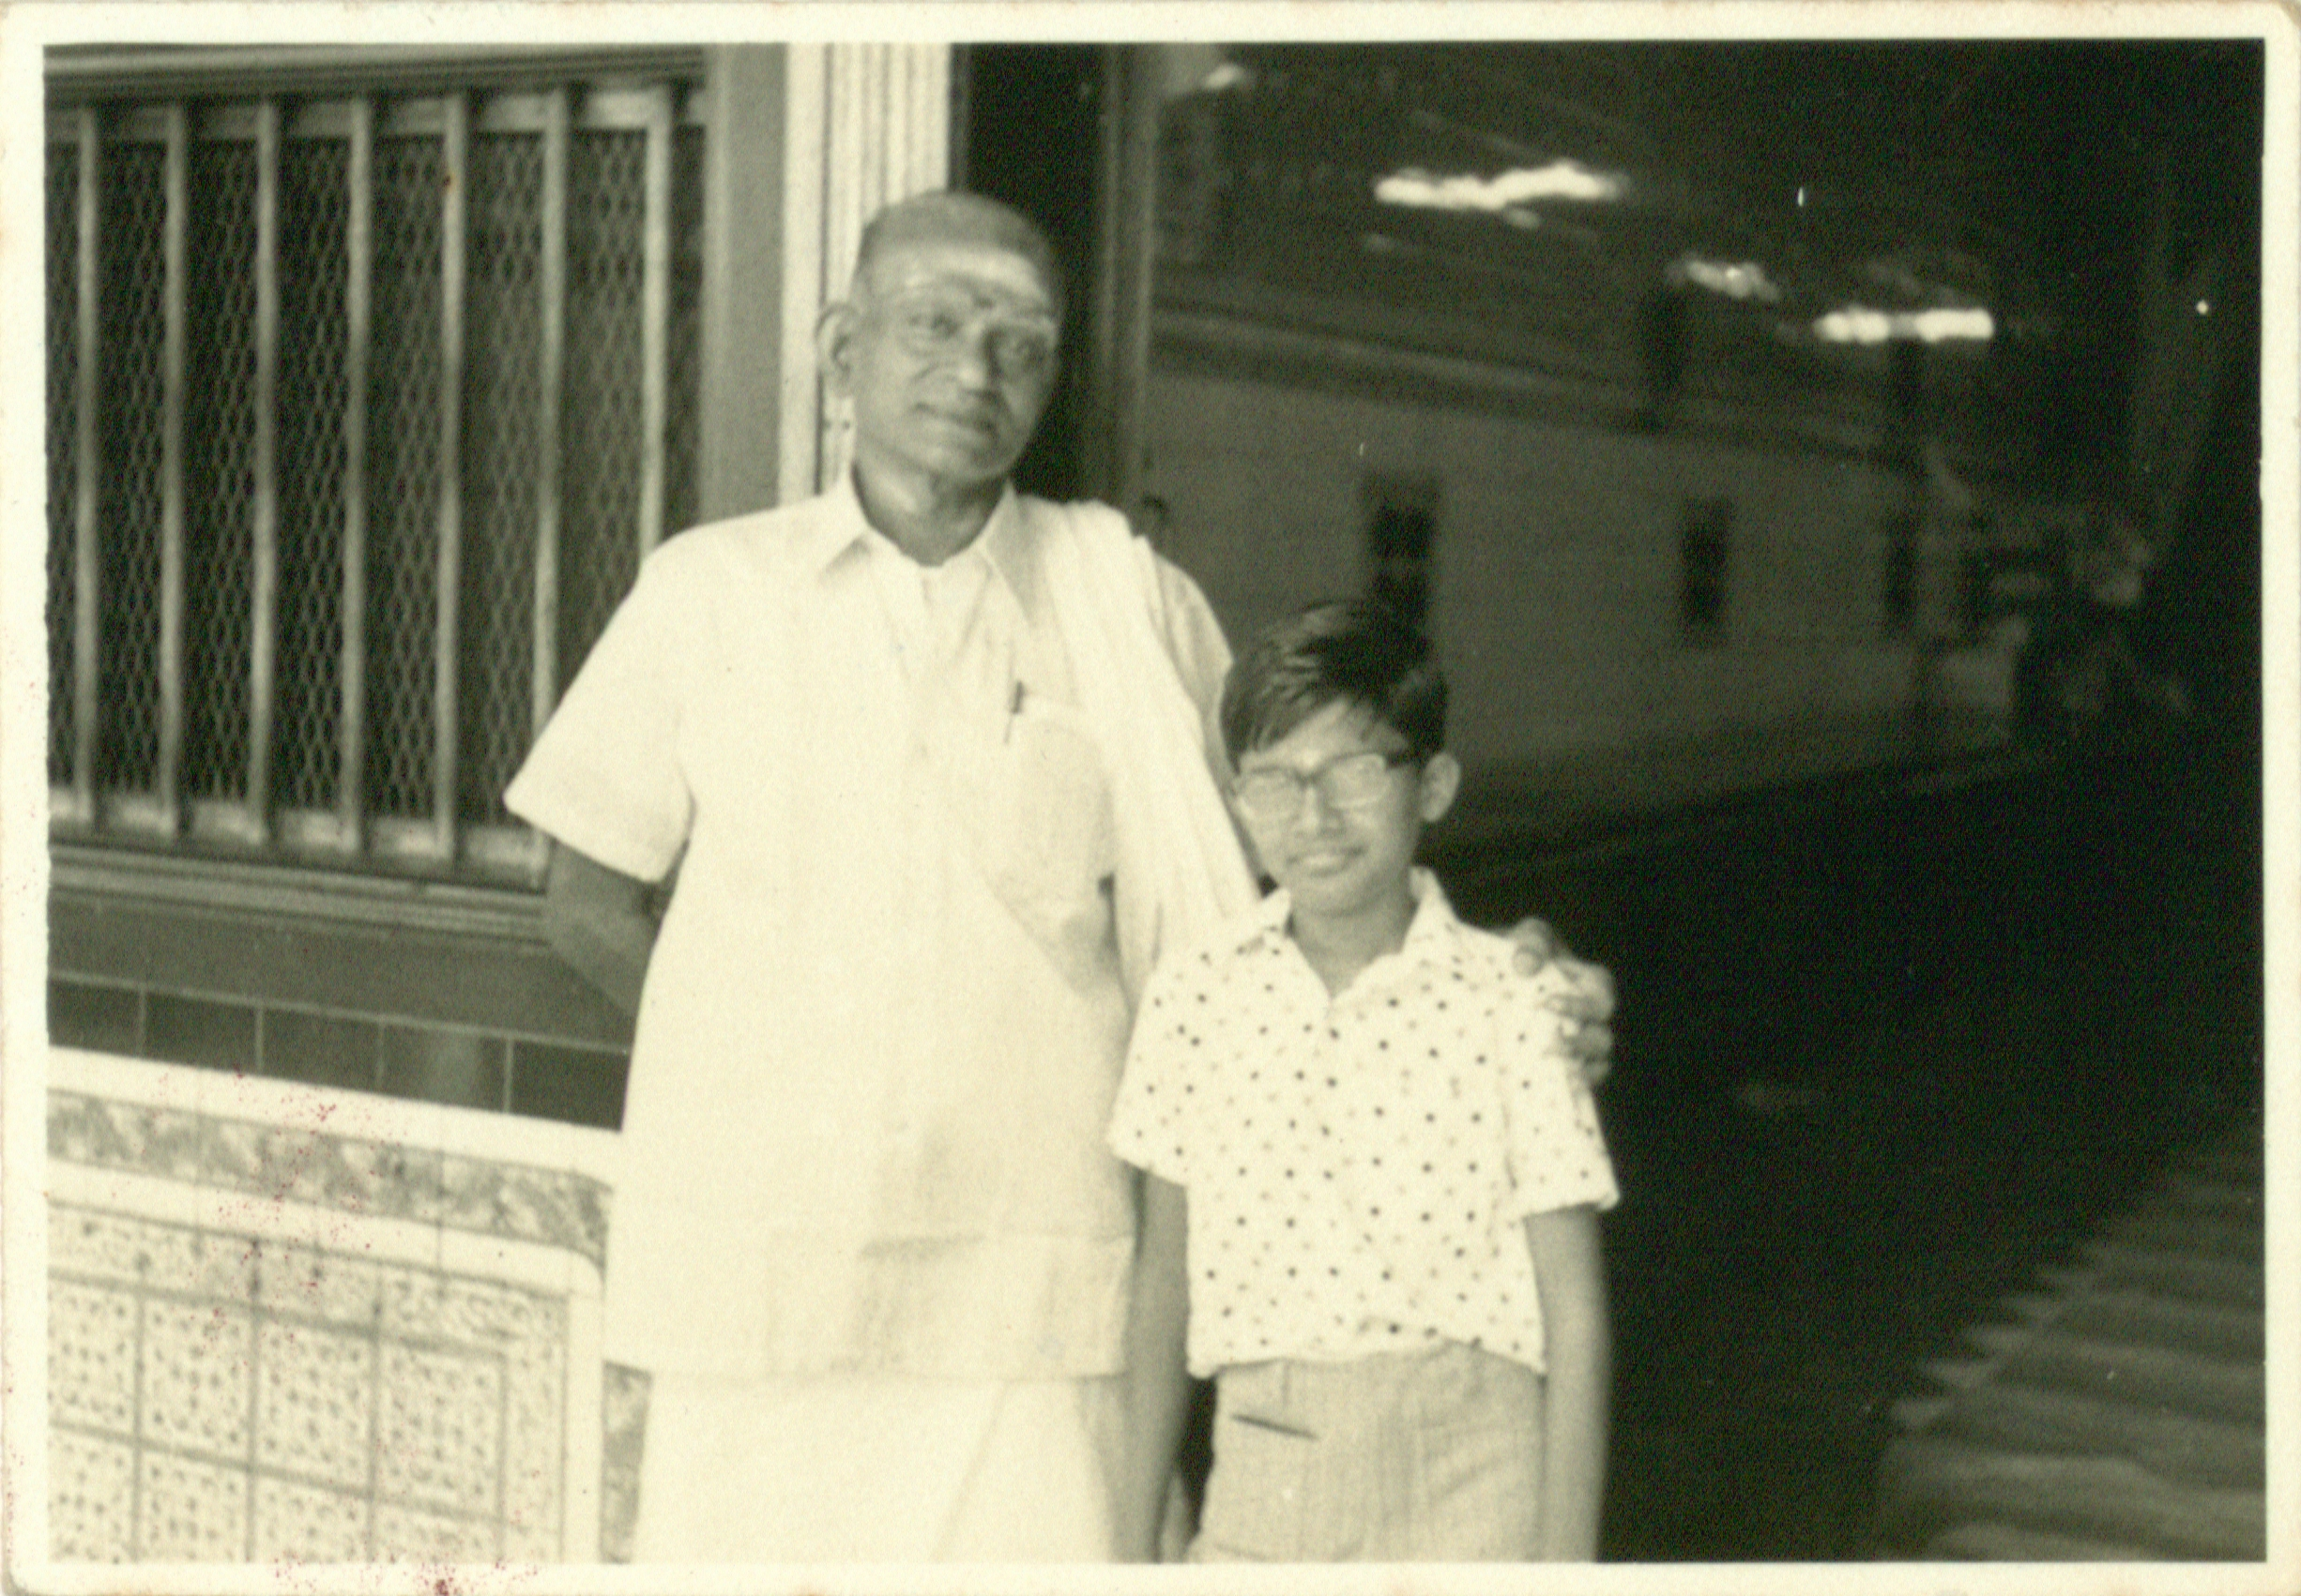 Doorway of the 49 Market Street kittengi which was managed by the Chettiar Cooperative Society, 1971. Nachiappa Chettiar Collection, courtesy of National Archives of Singapore